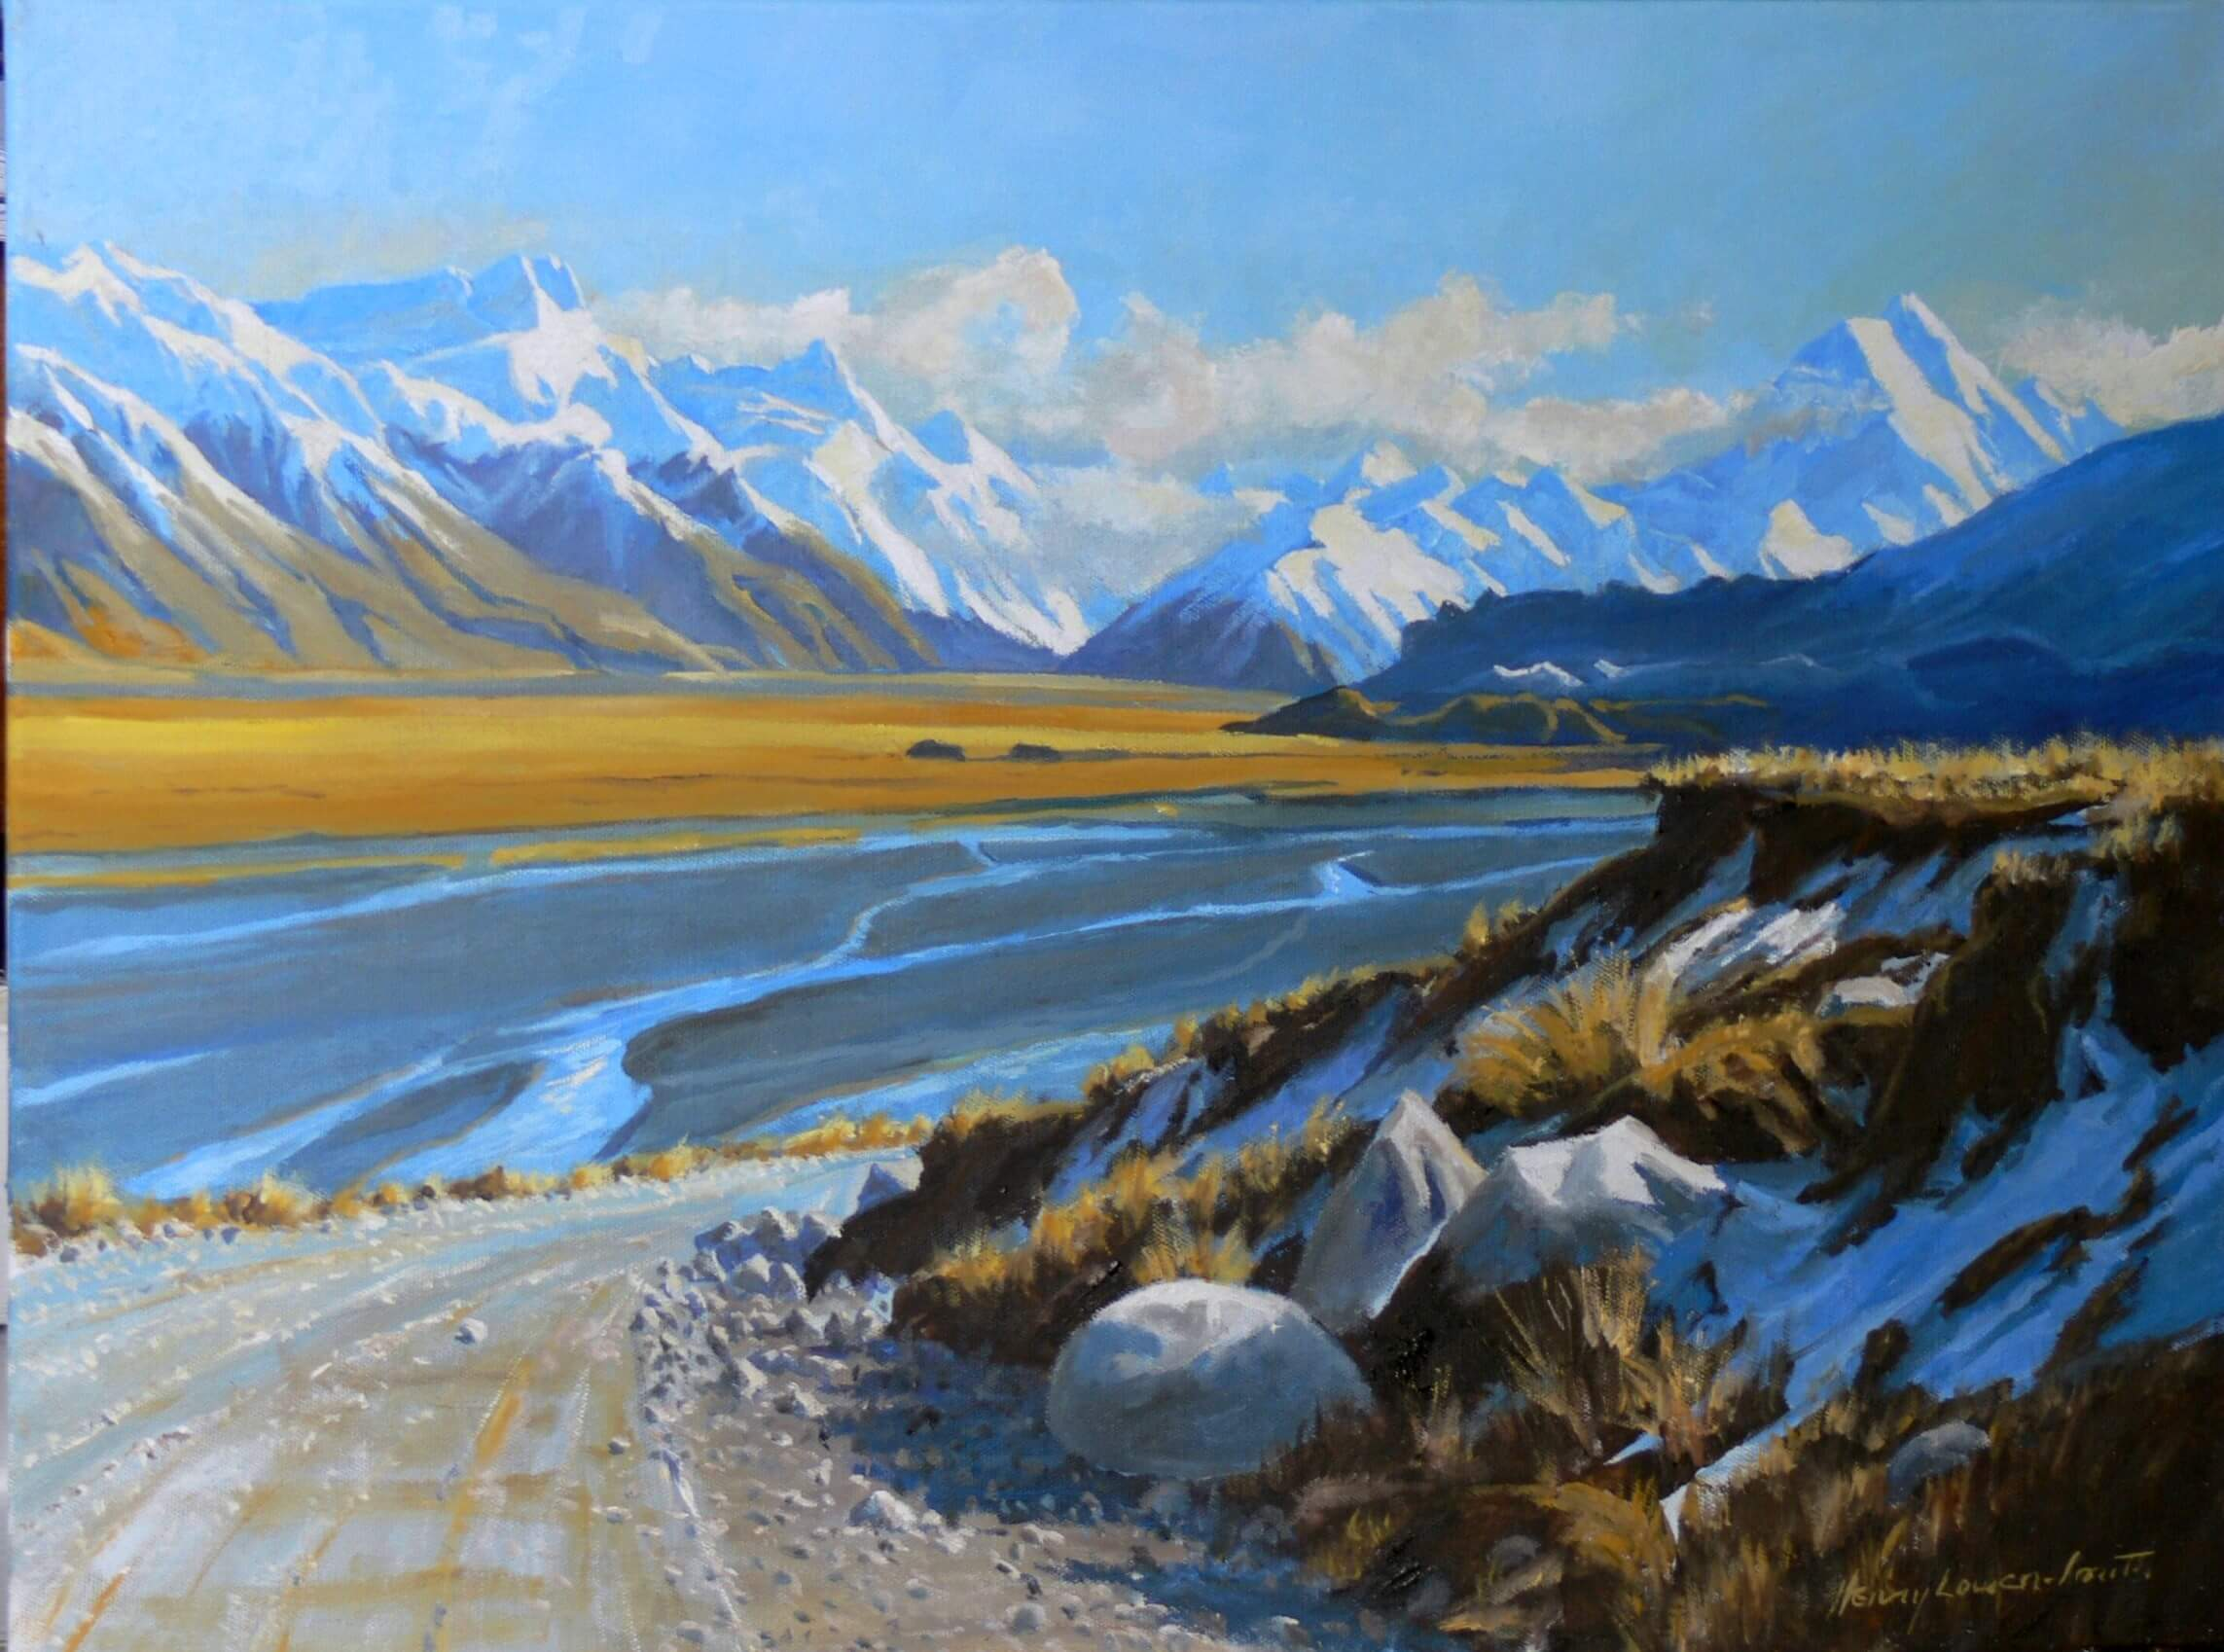 Road to Mount Cook Station